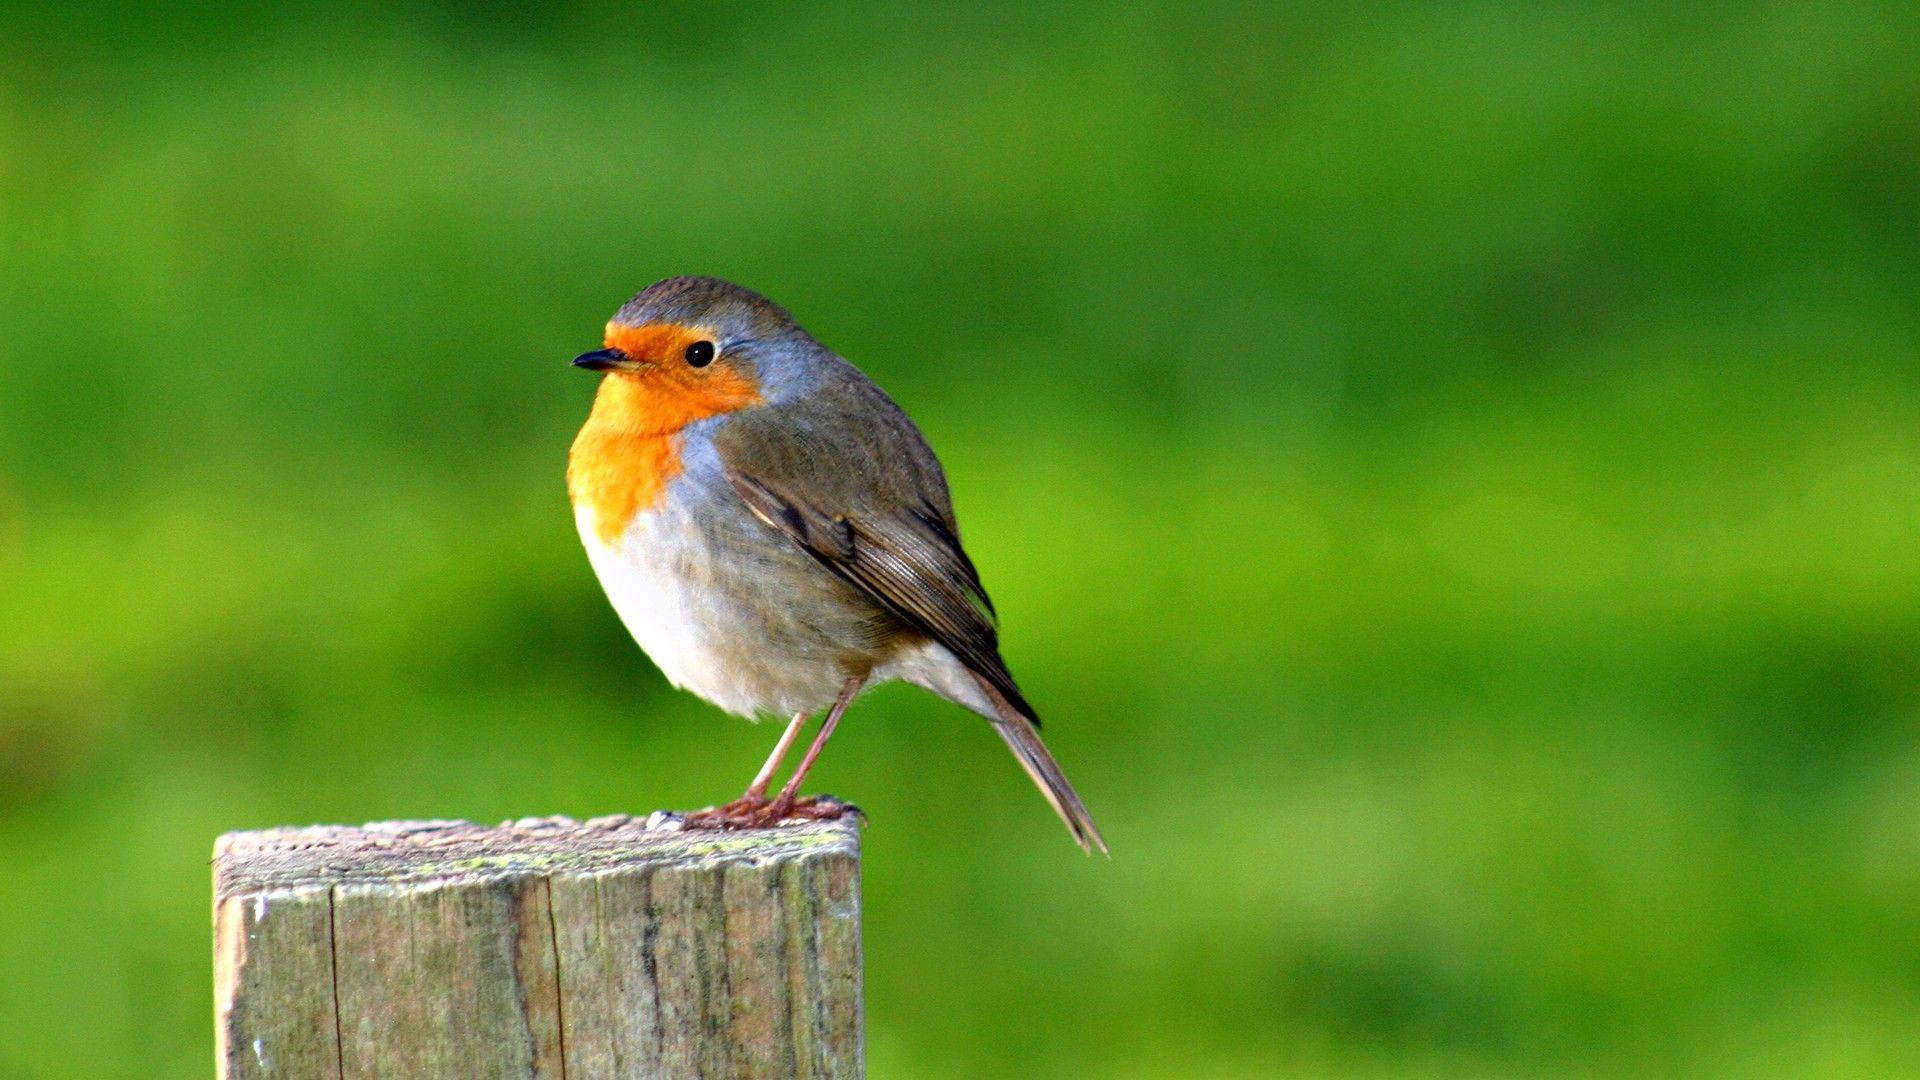 hd wallpaper download | robin bird hd desktop wallpaper | hd desktop